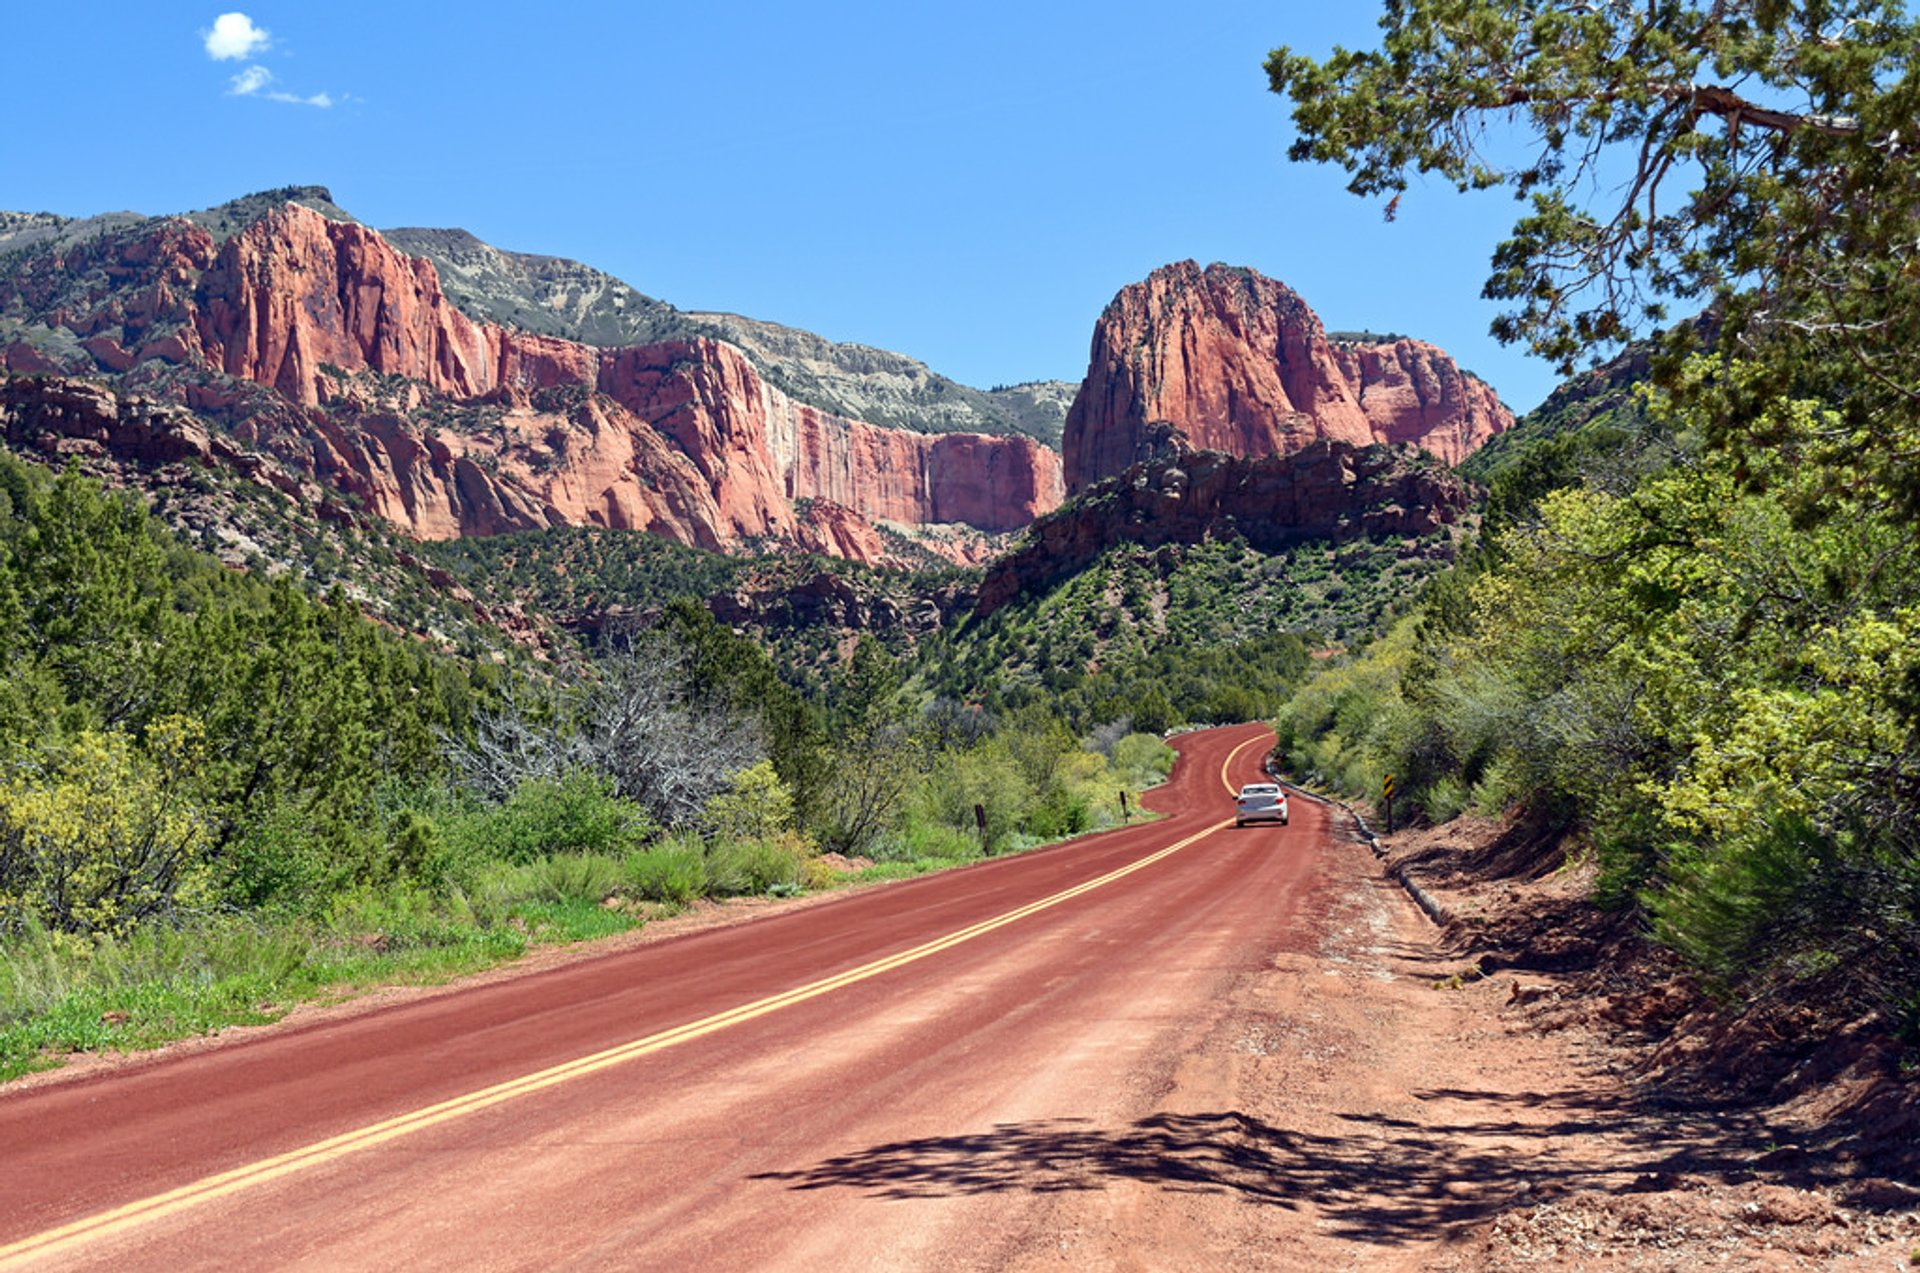 Kolob Canyons Scenic Drive in Utah 2020 - Best Time